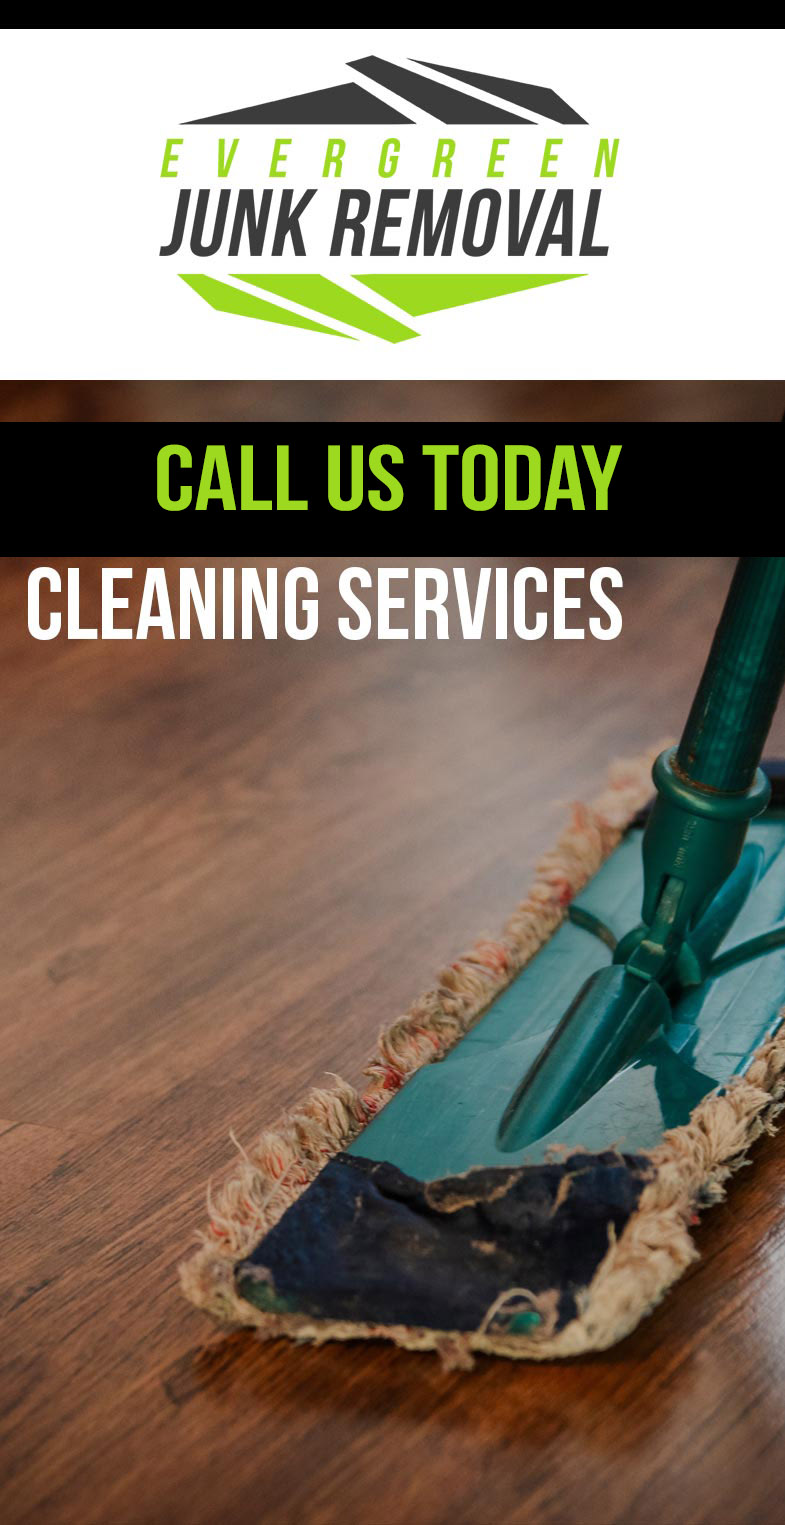 North Lauderdale Florida Maid Services